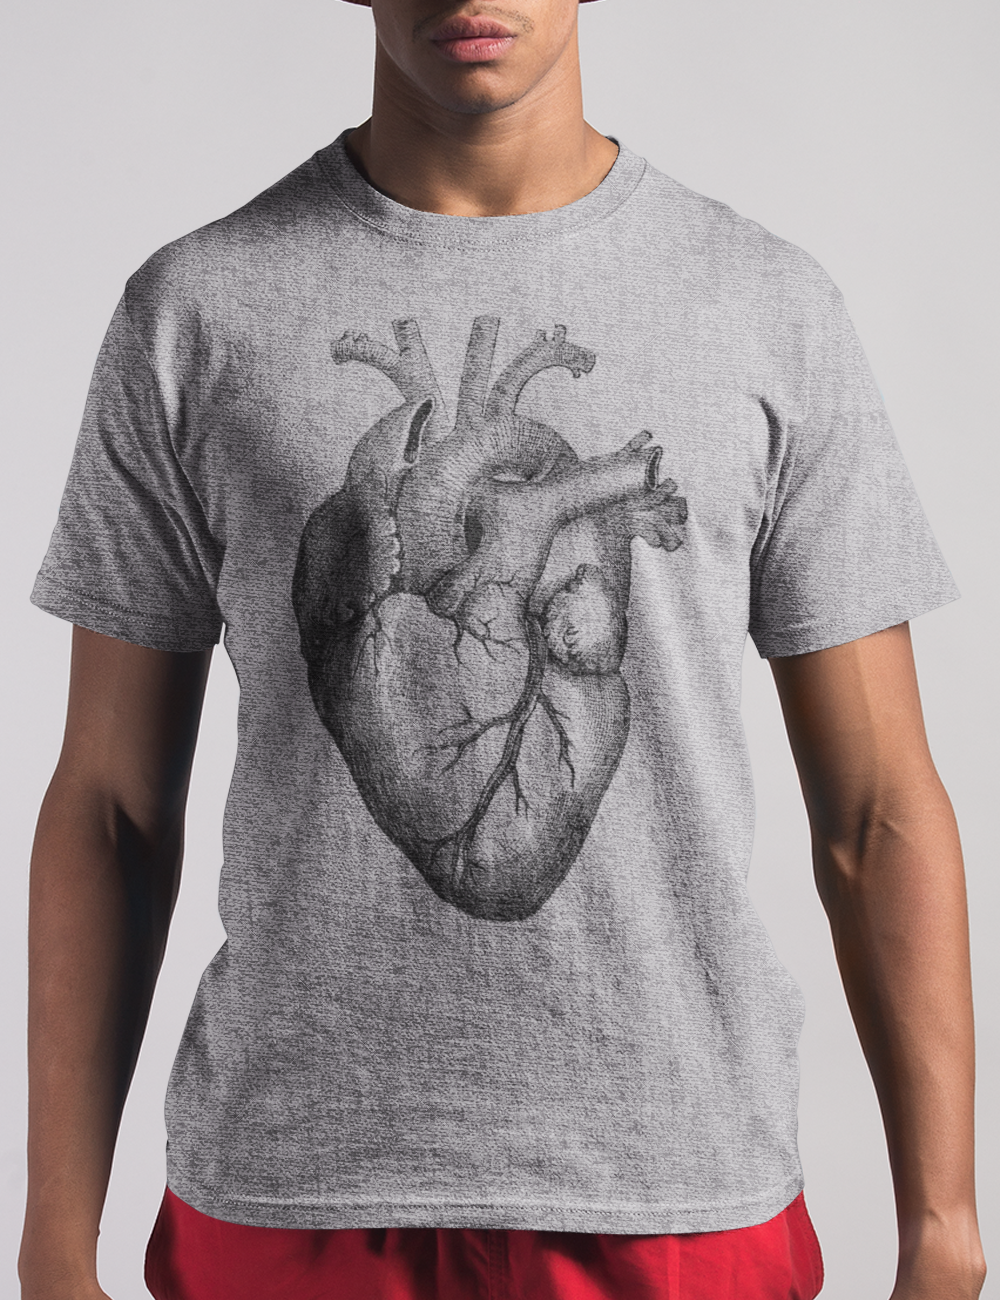 Anatomical Heart | T-Shirt